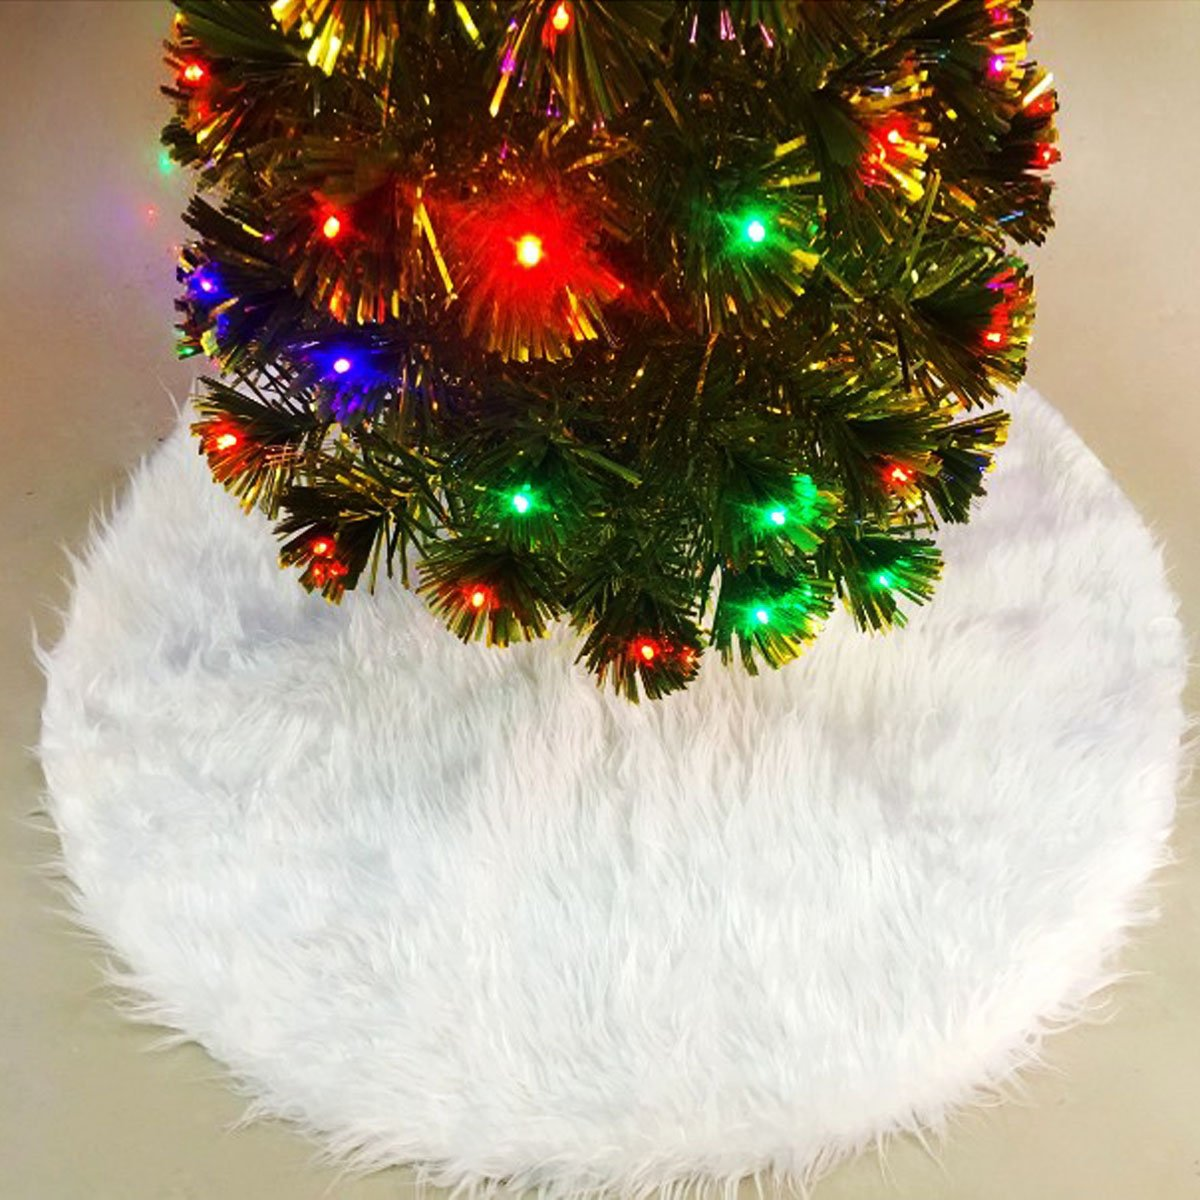 Cheap 20 Plush Christmas Tree, find 20 Plush Christmas Tree deals on ...